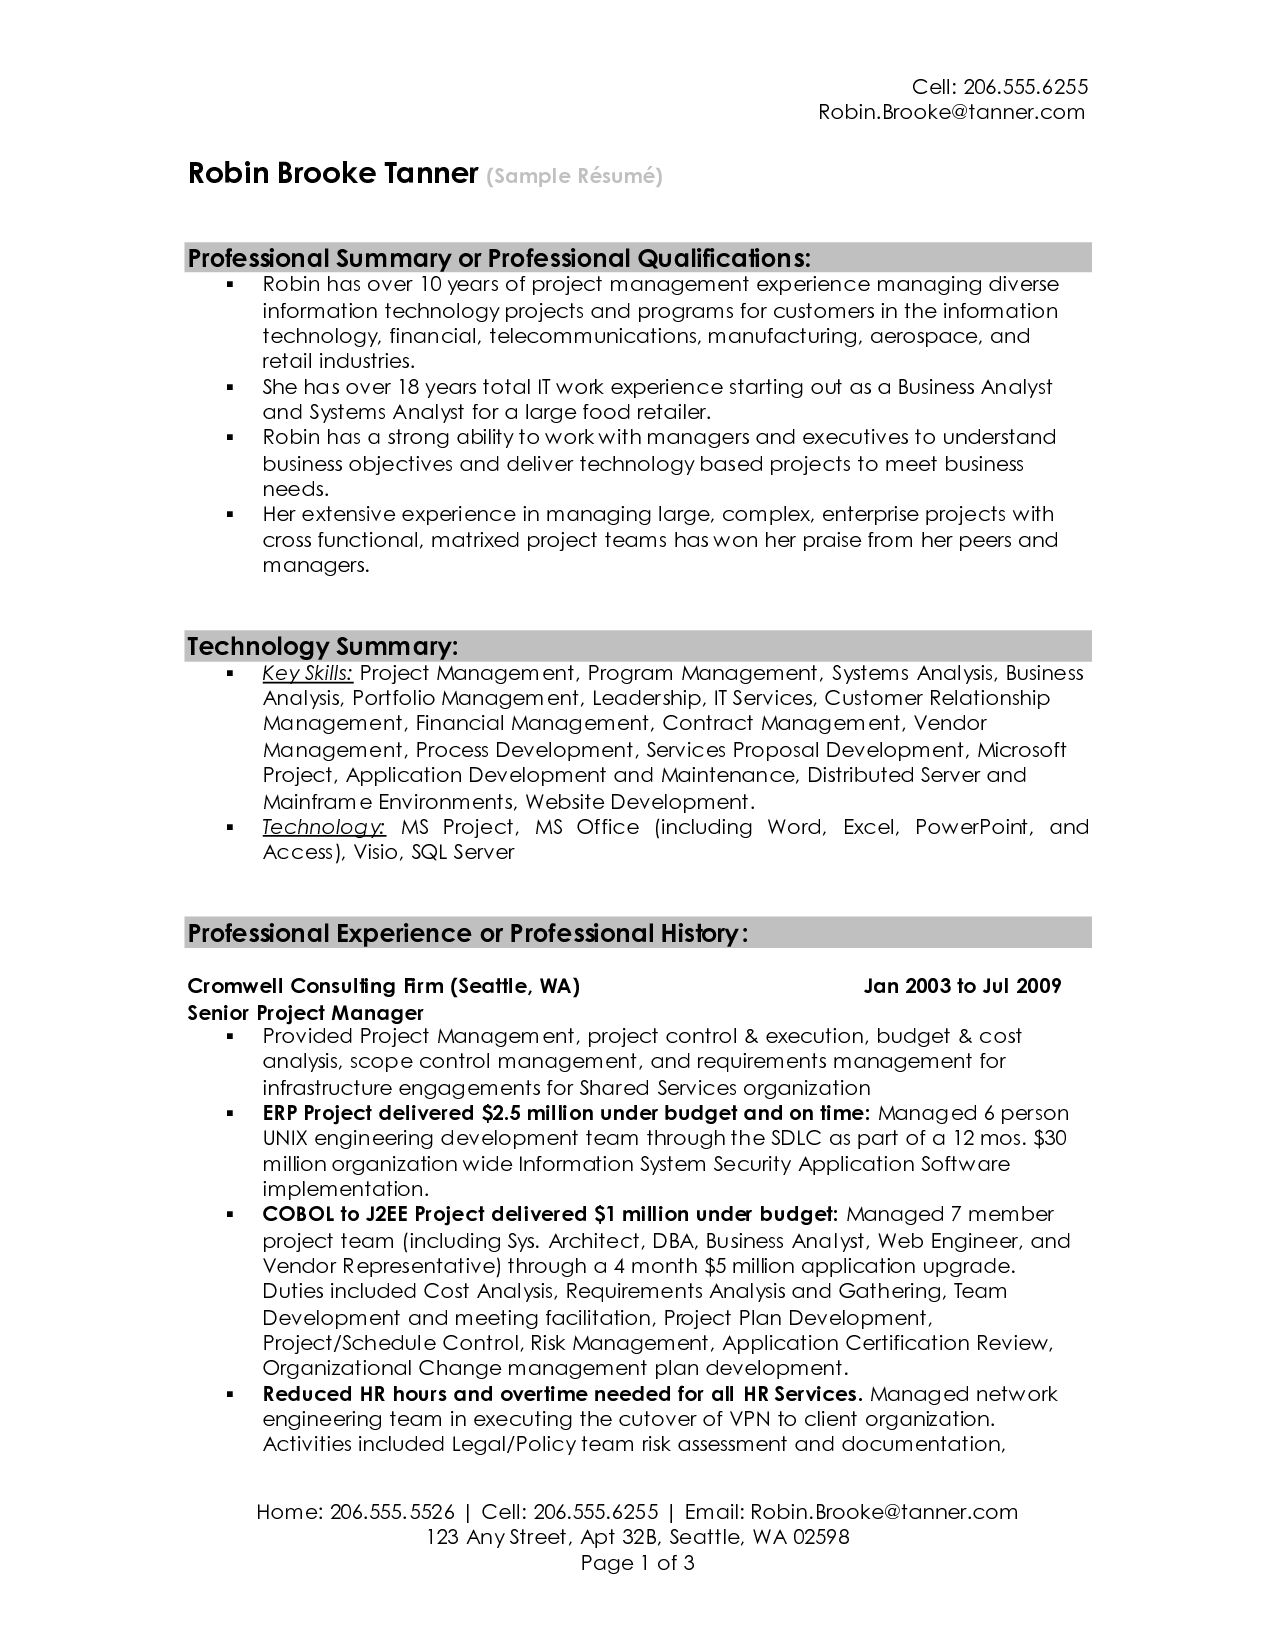 Professional Summary Resume New Professional Summary Resume Examples Professional Resume Summary Inspiration